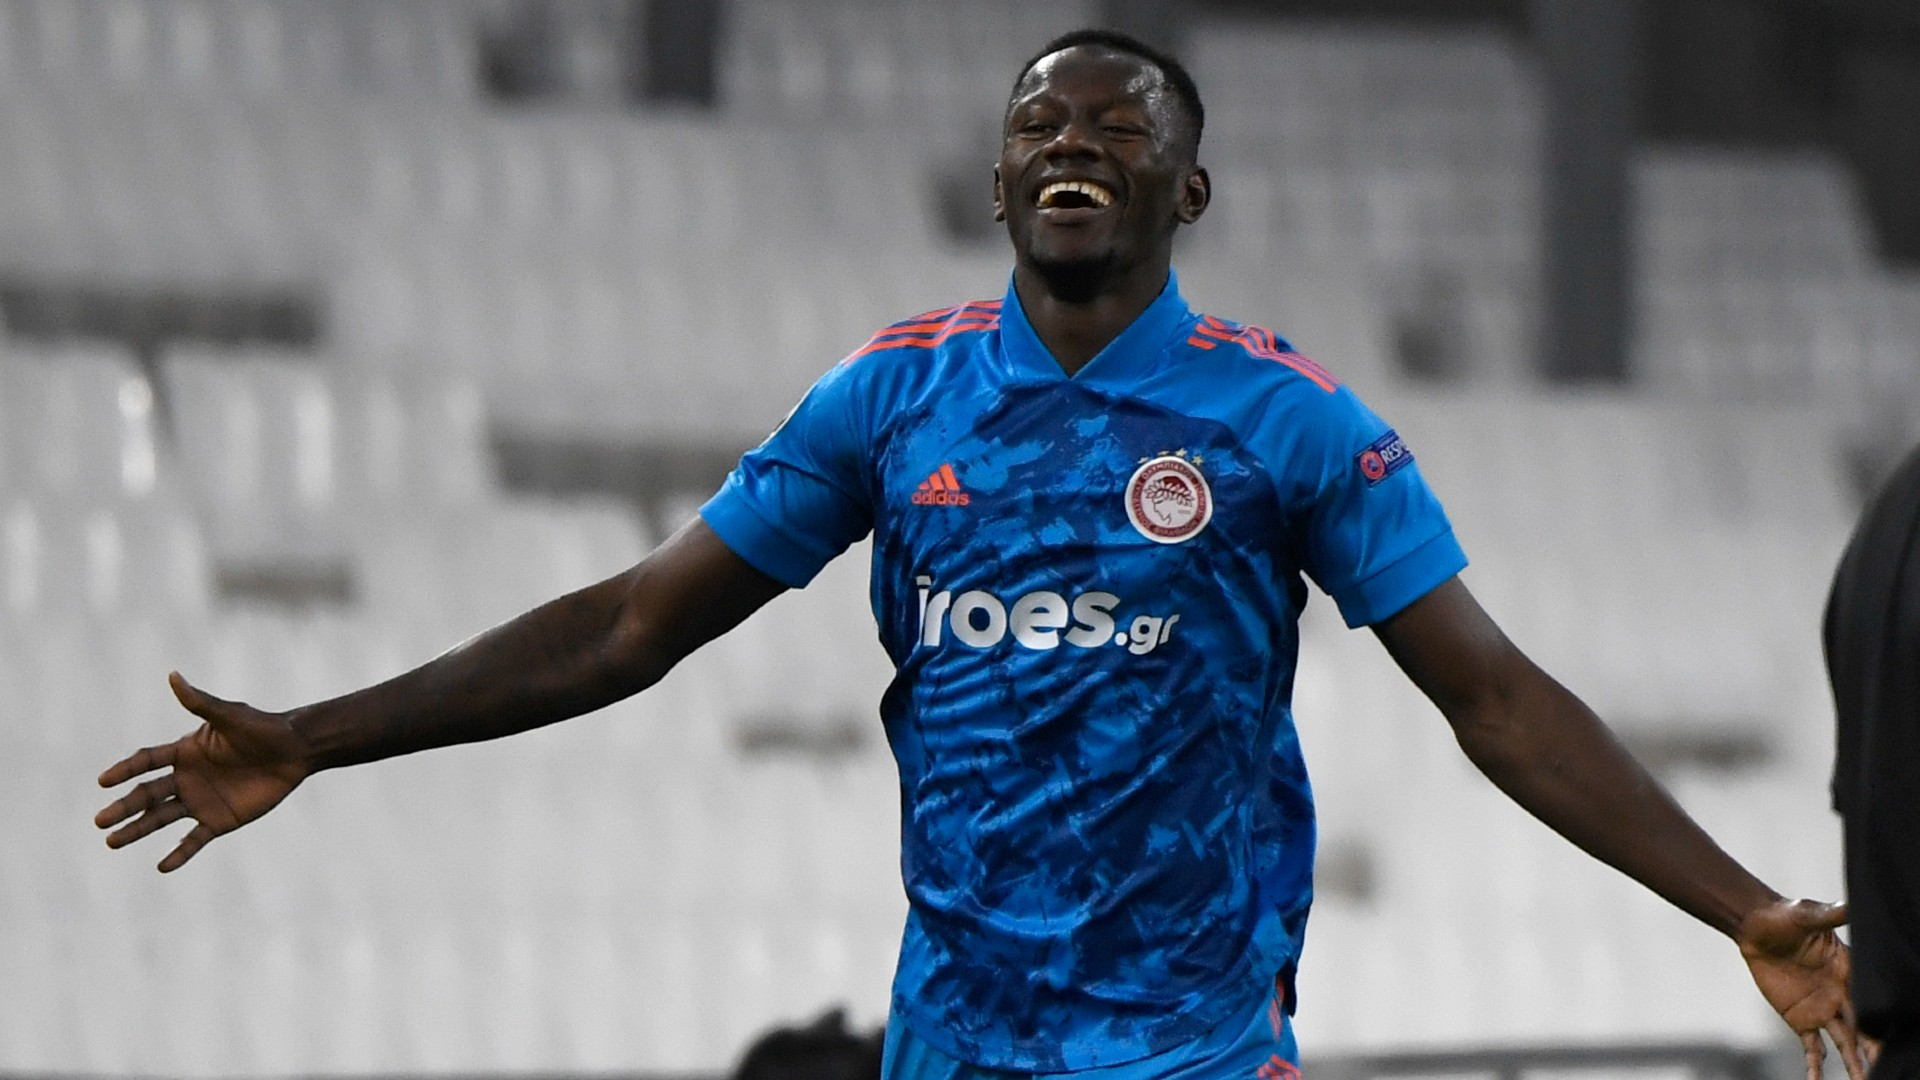 Mohamed Camara scores and gets sent off in Olympiakos' Champions League qualifiers win